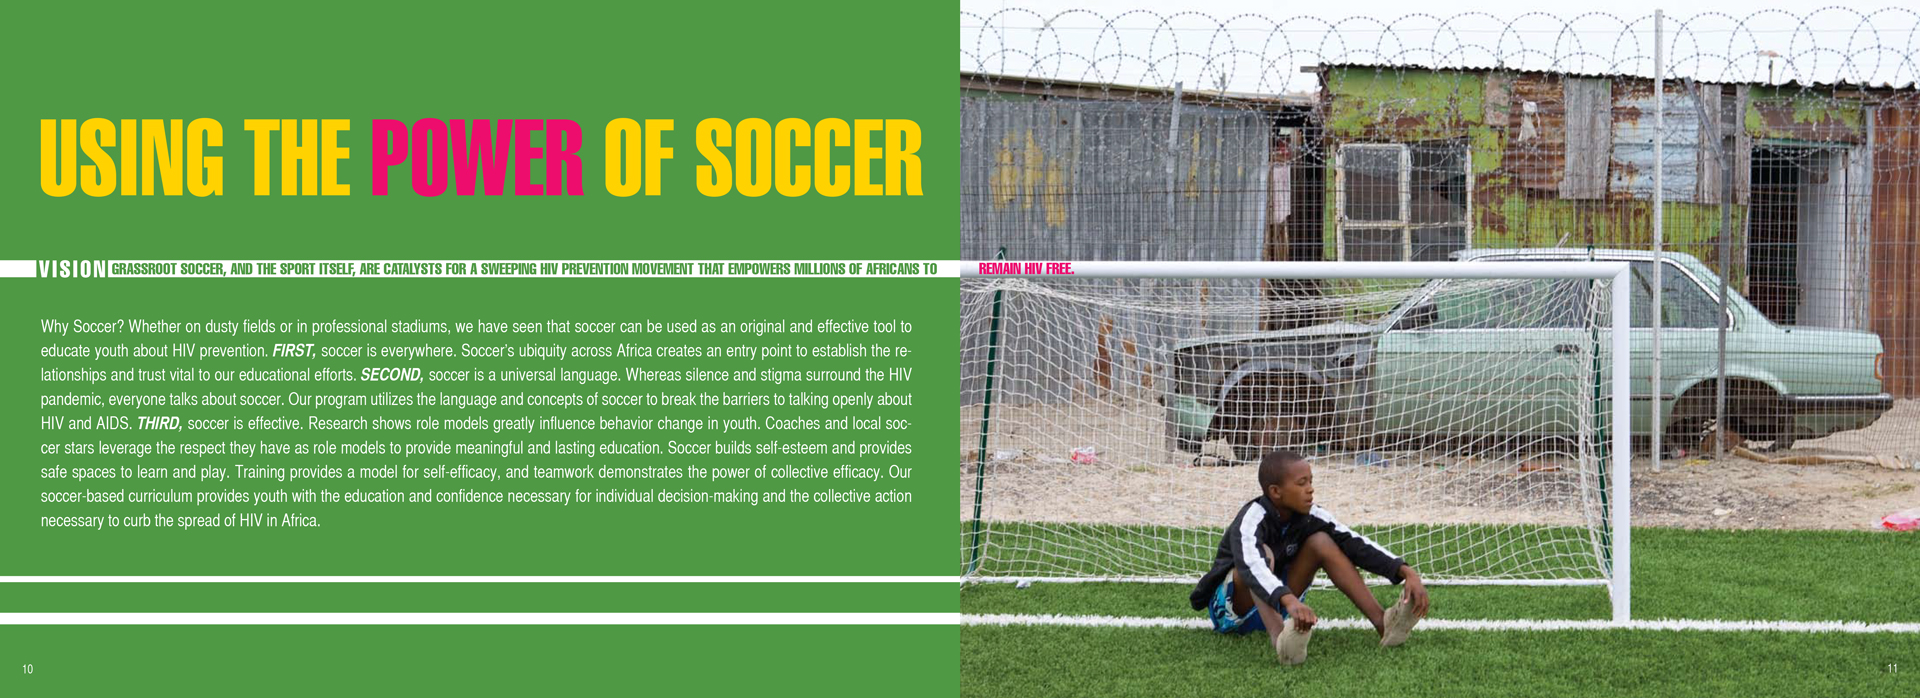 "young African boy sitting on a soccer field ""Using the power of soccer"" headline"